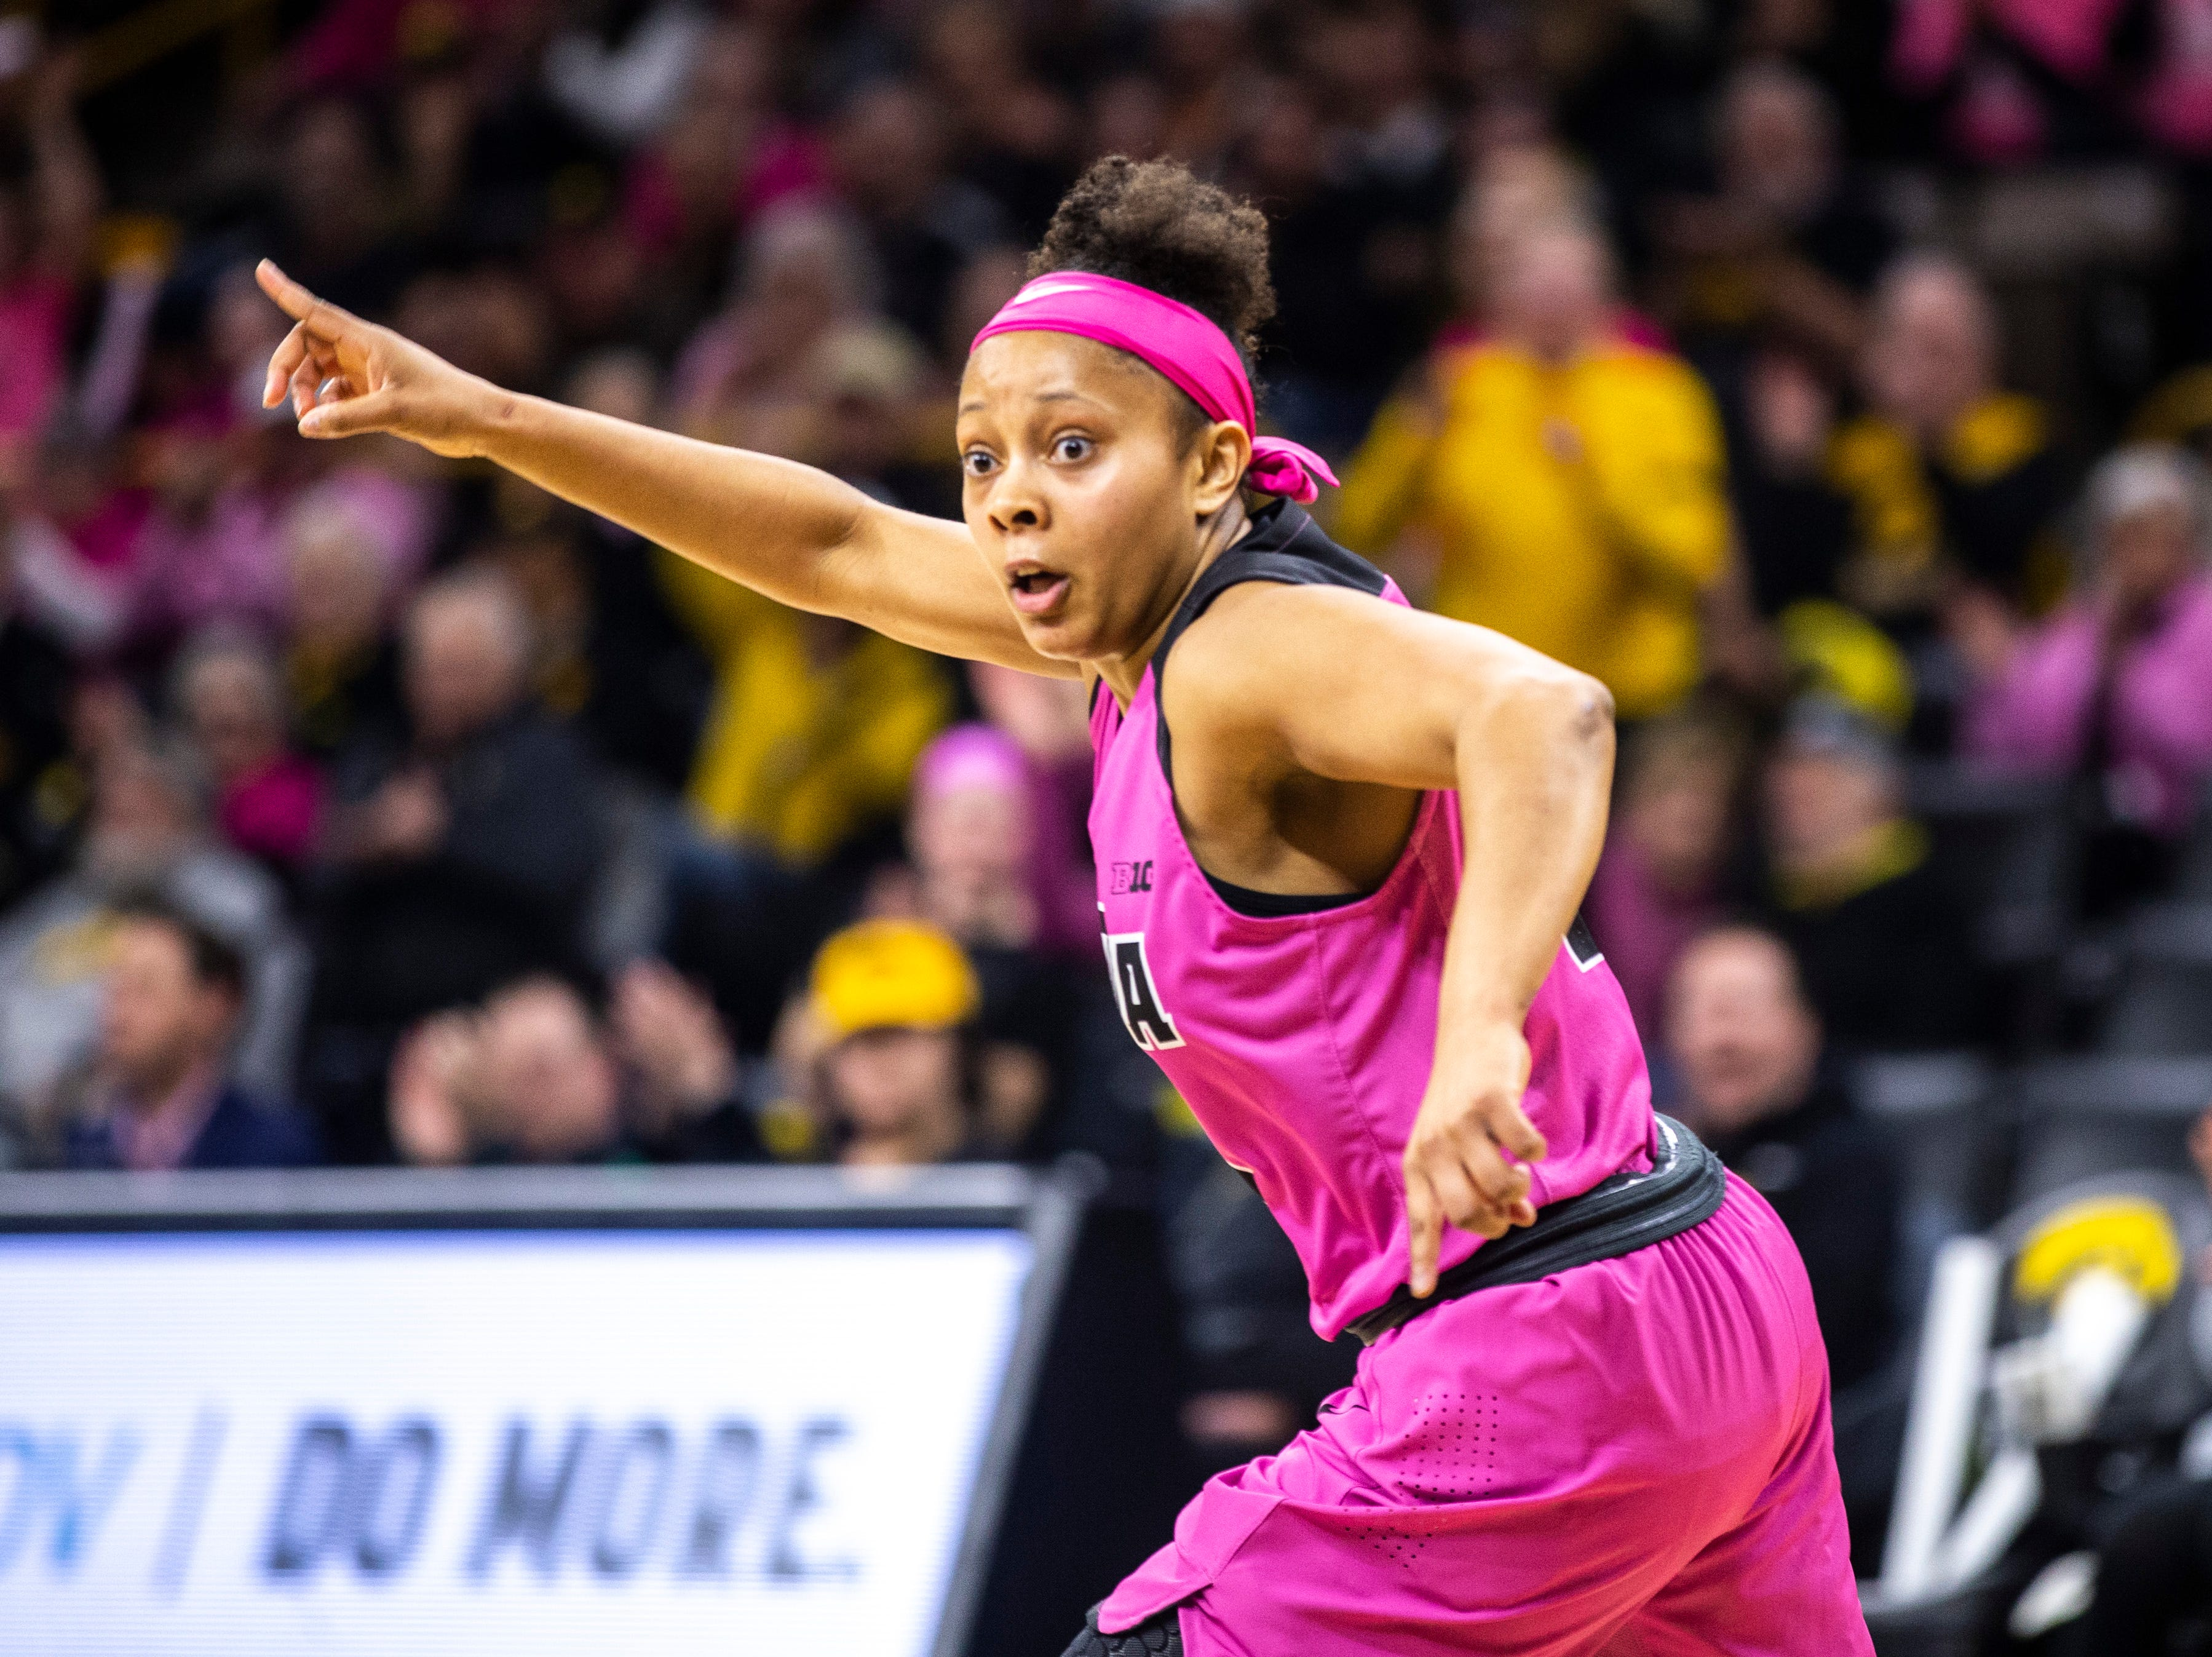 Iowa guard Tania Davis (11) gestures after making a basket during a NCAA Big Ten Conference women's basketball game on Sunday, Feb. 17, 2019 at Carver-Hawkeye Arena in Iowa City, Iowa.